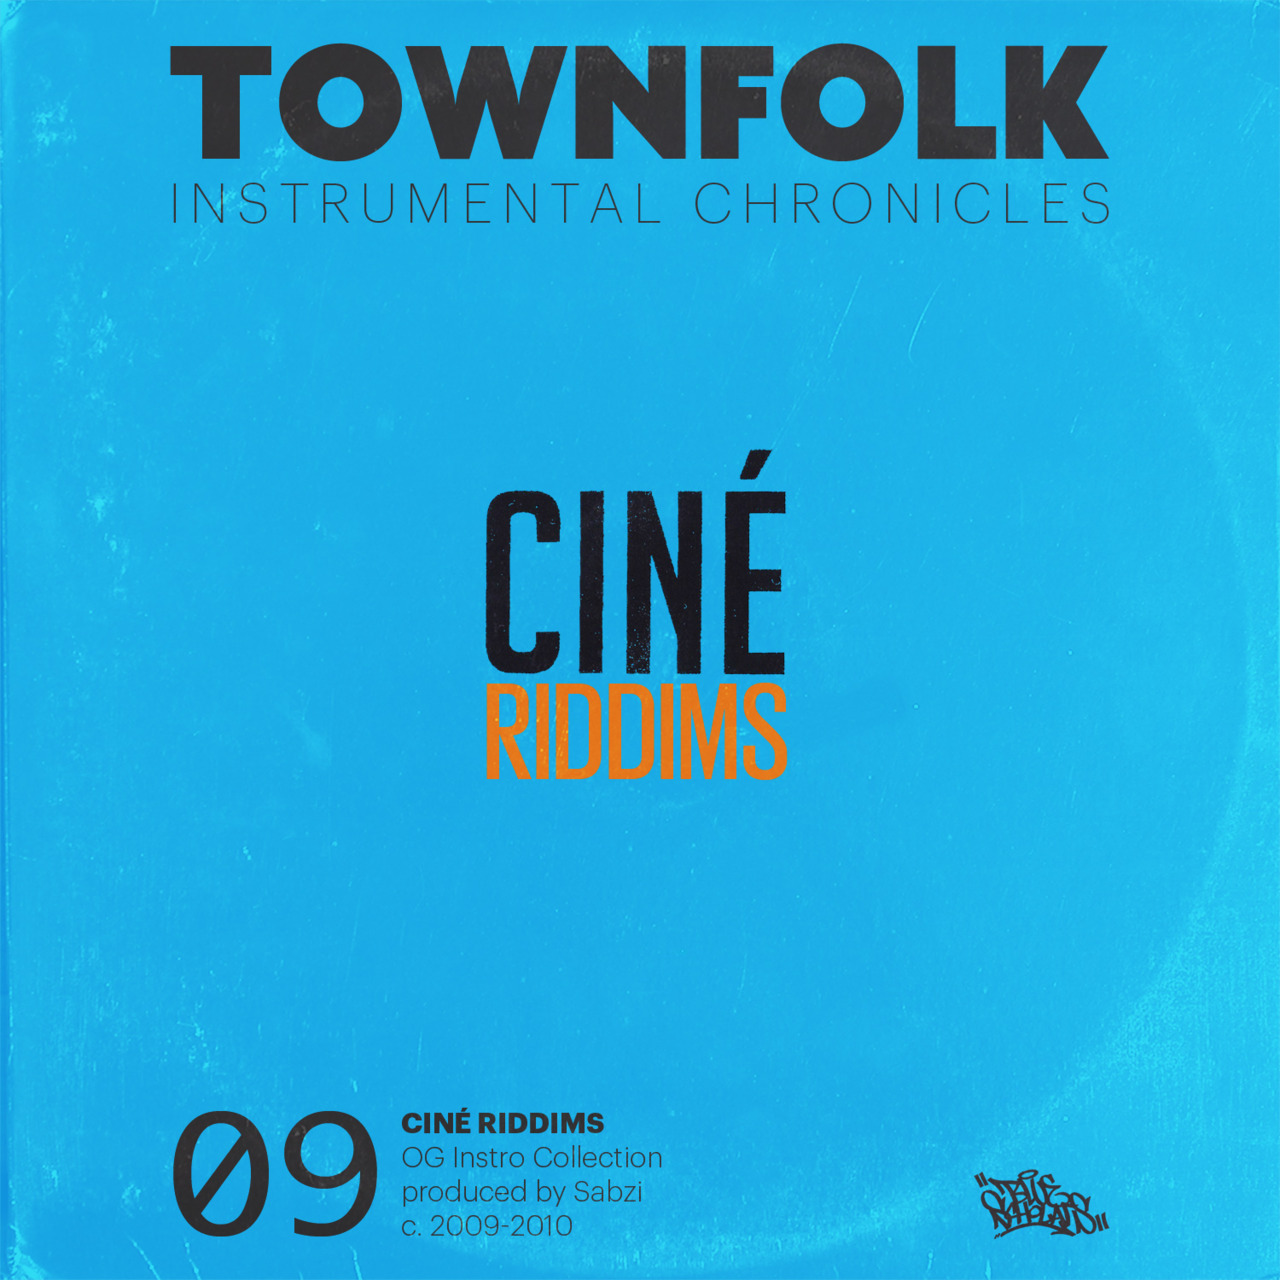 Get the CINÉ RIDDIMS here.